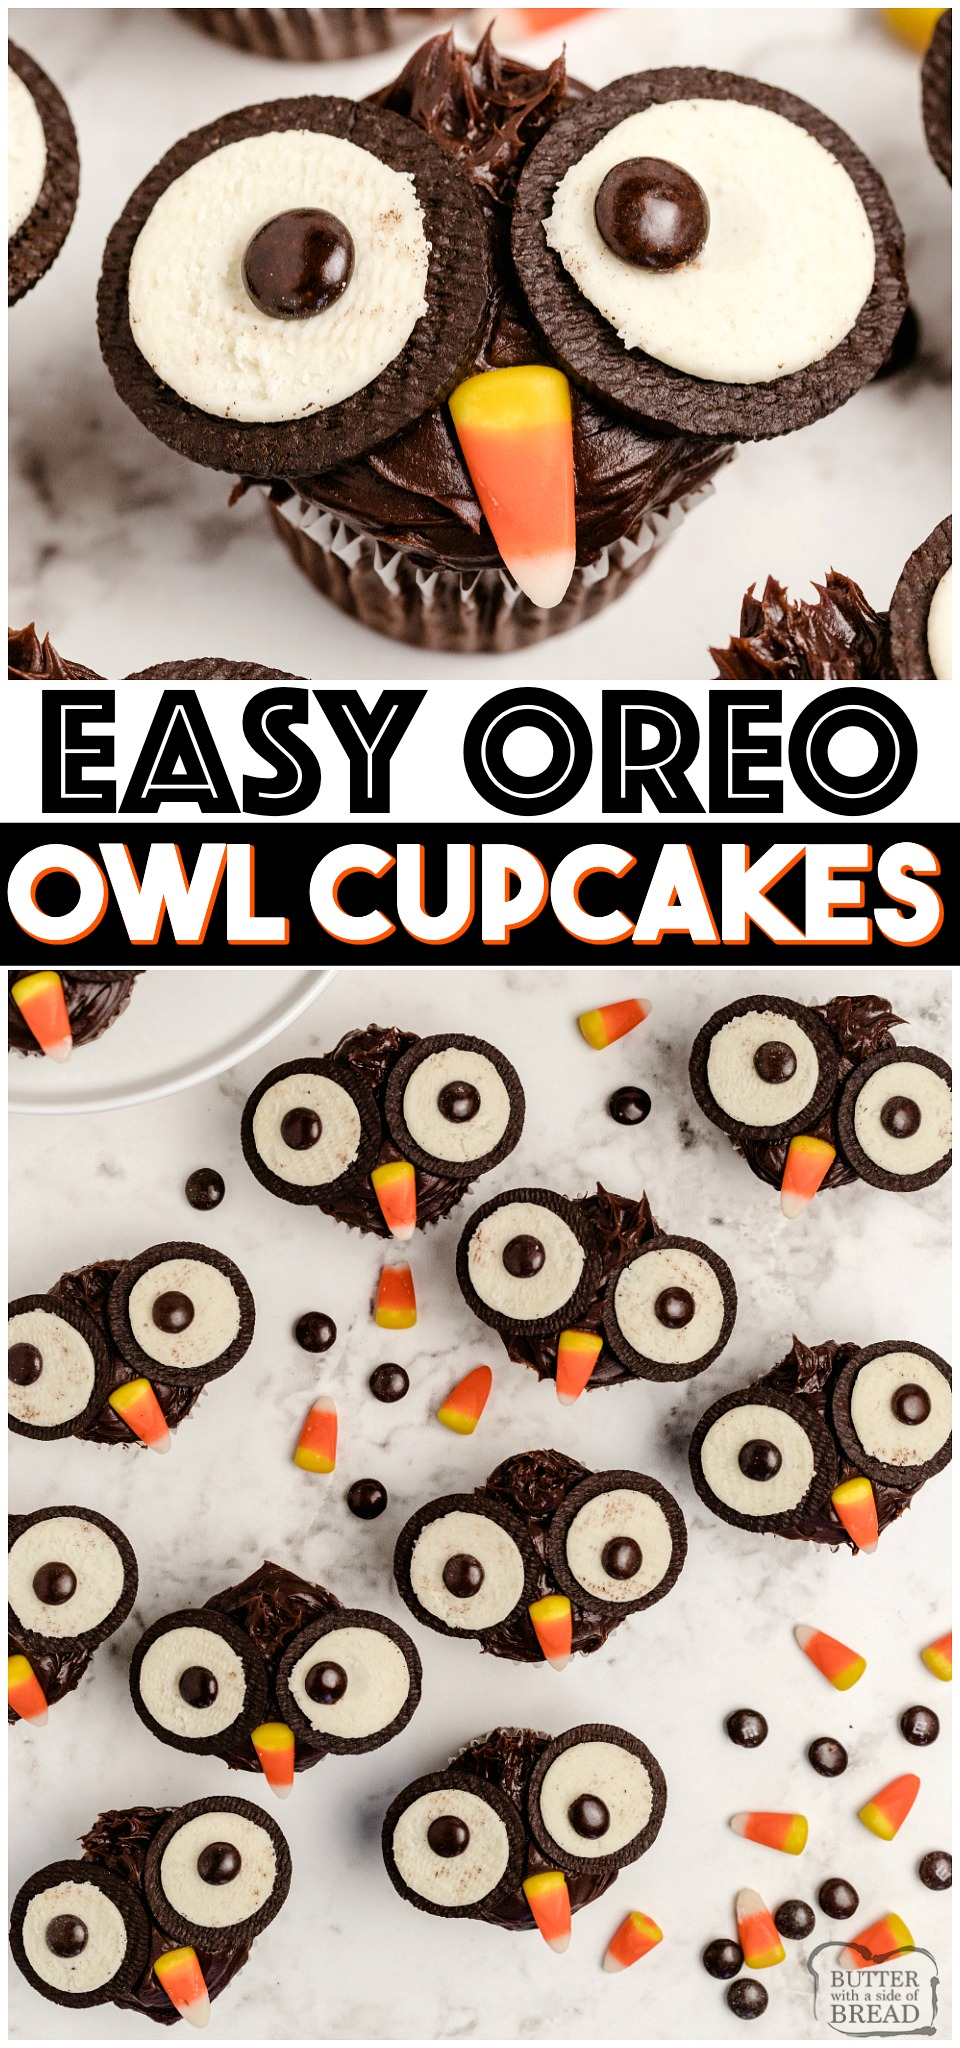 Oreo Owl Cupcakes made with chocolate ganache, Oreos and candy! Easy chocolate cupcakes made to look like little owls. Simple Halloween cupcakes that everyone loves!#cupcakes #Halloween #Oreo #Owl #OwlCupcakes #Easydessert #recipe from BUTTER WITH A SIDE OF BREAD